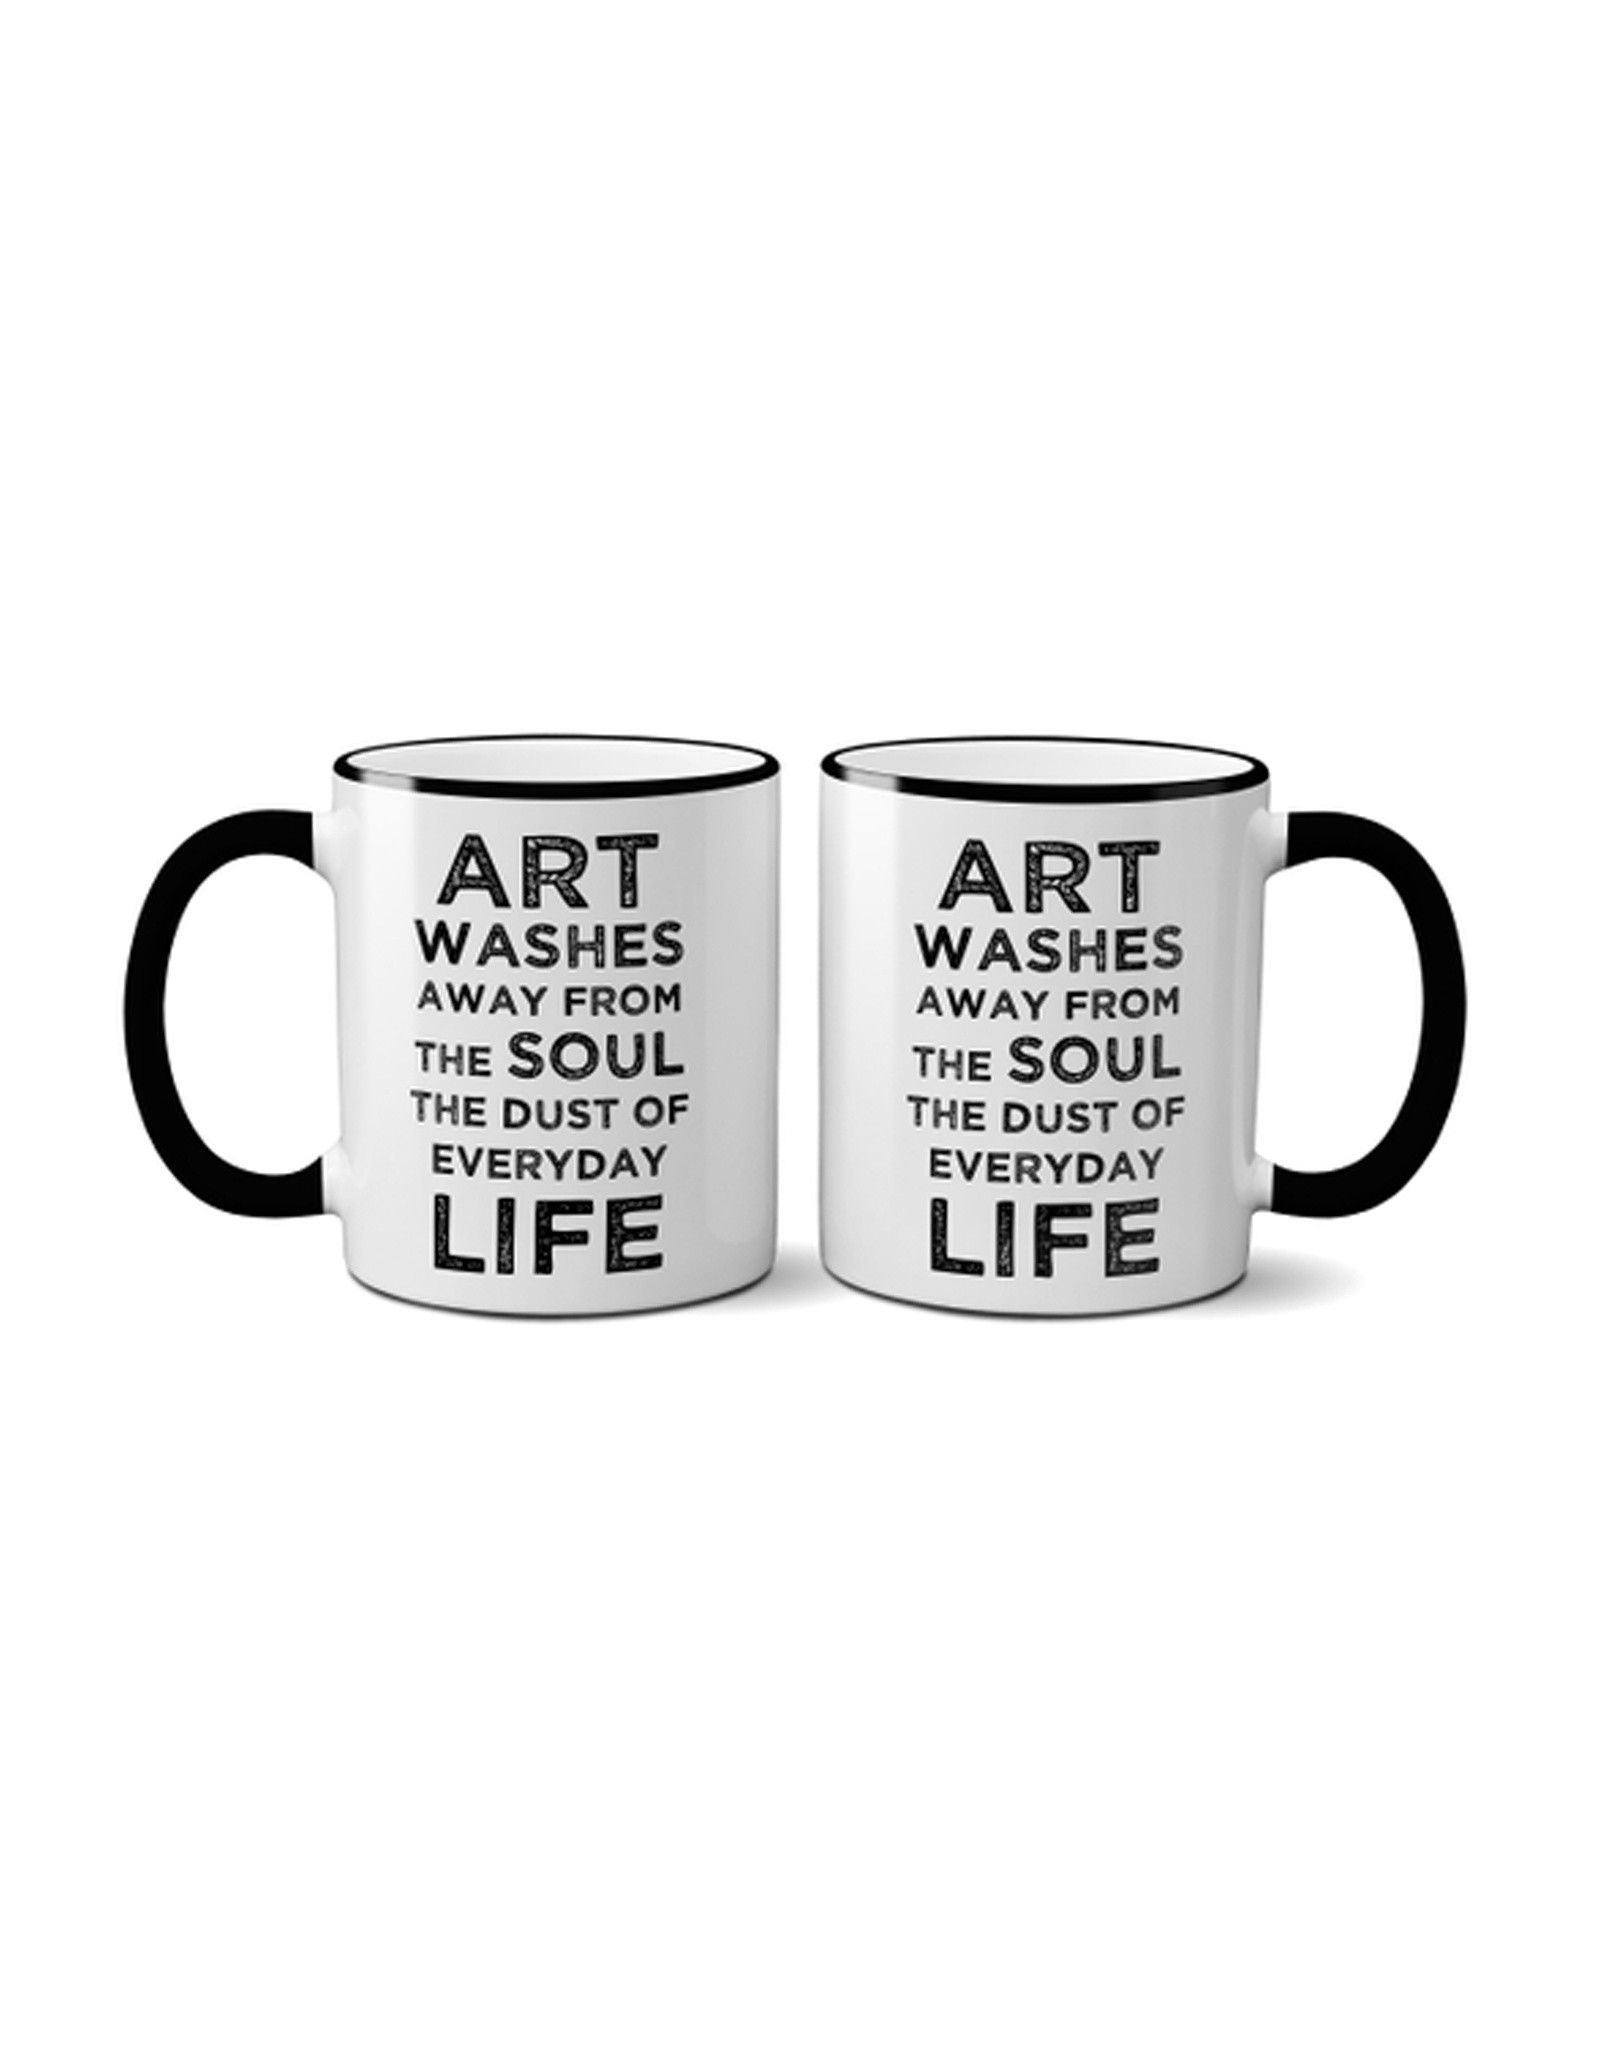 Art Washes Mug